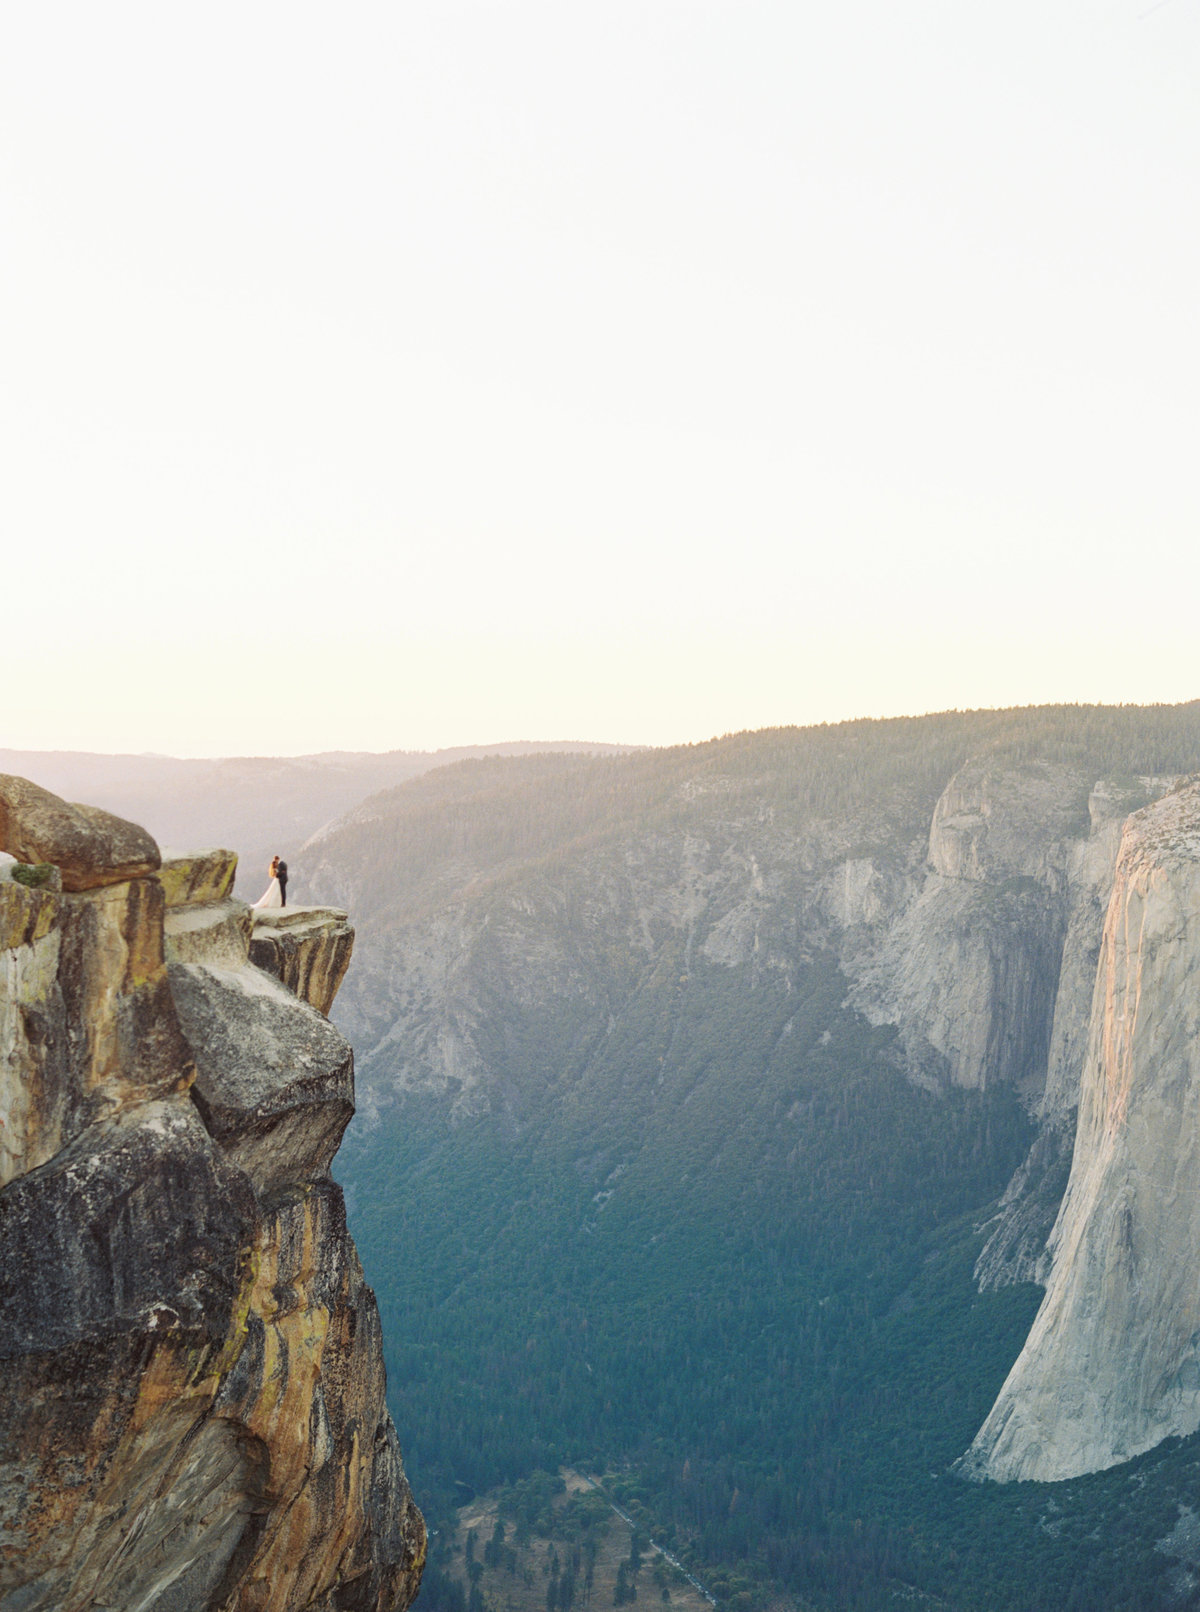 Yosemite Elopement Wedding Taft Point - Cassie Valente Photography 2